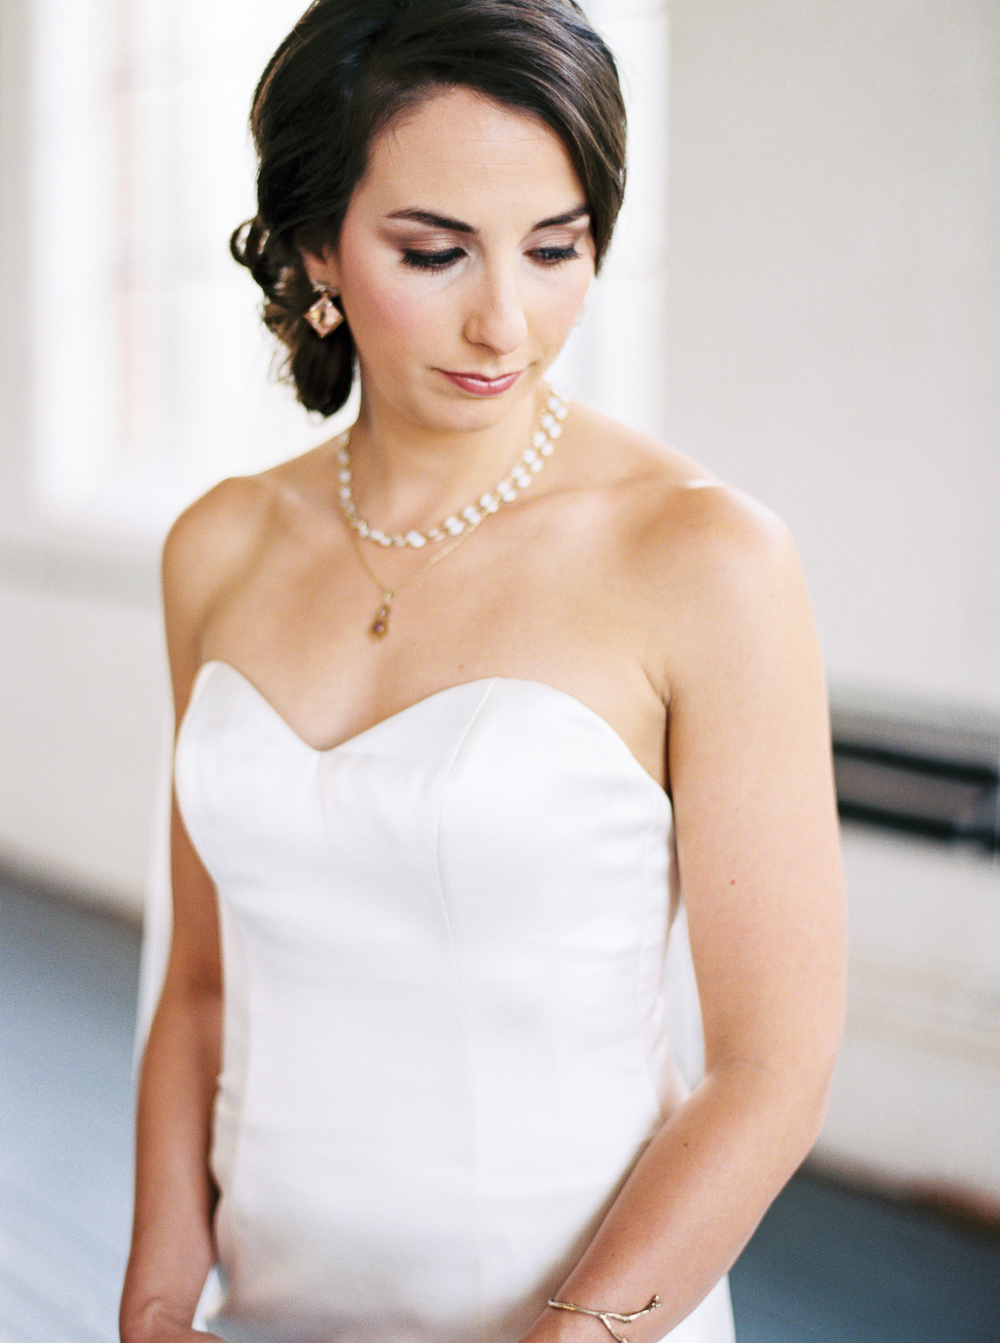 Greenville-Wedding-Photographer-Bridal-Portraits-37.jpg